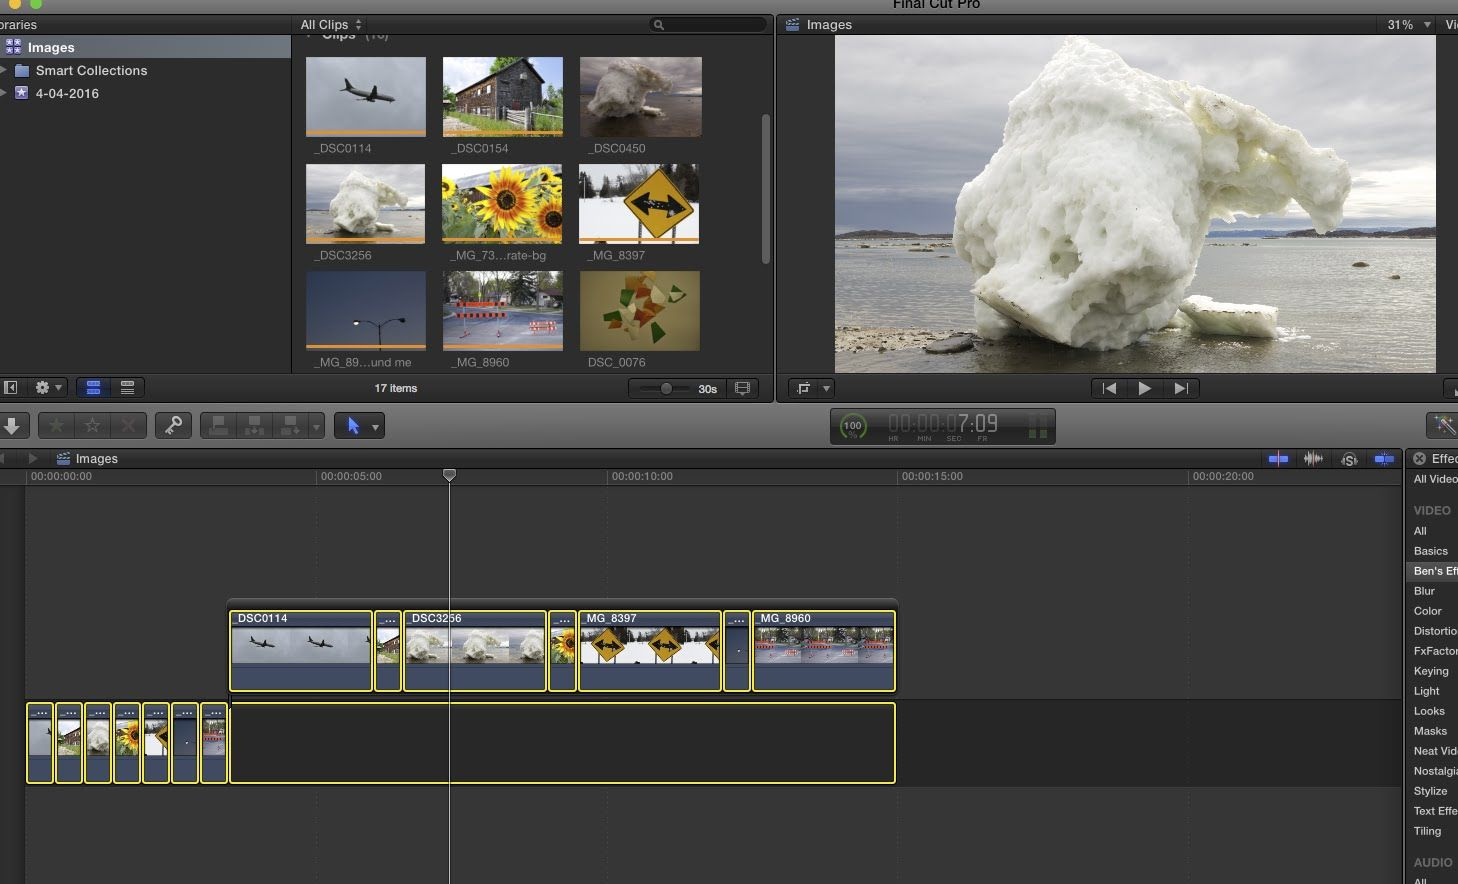 Final Cut Pro X: Change The Duration of Multiple Images in